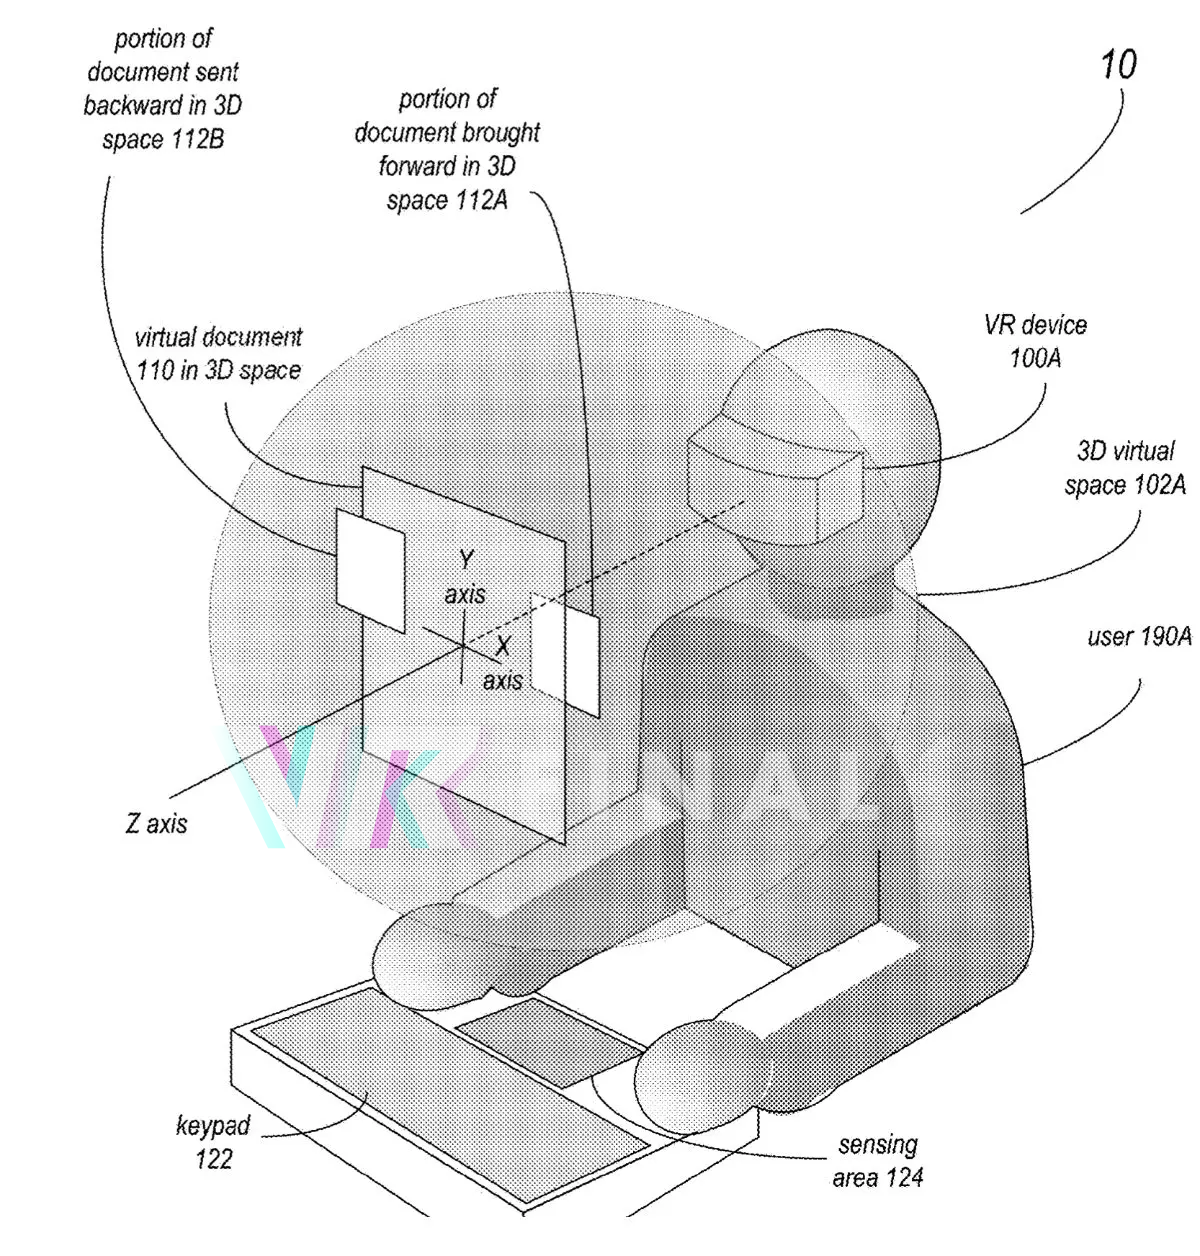 The Apple AR VR Glasses/Headset patent application has recently been updated with a concept for 3D document editing technology.